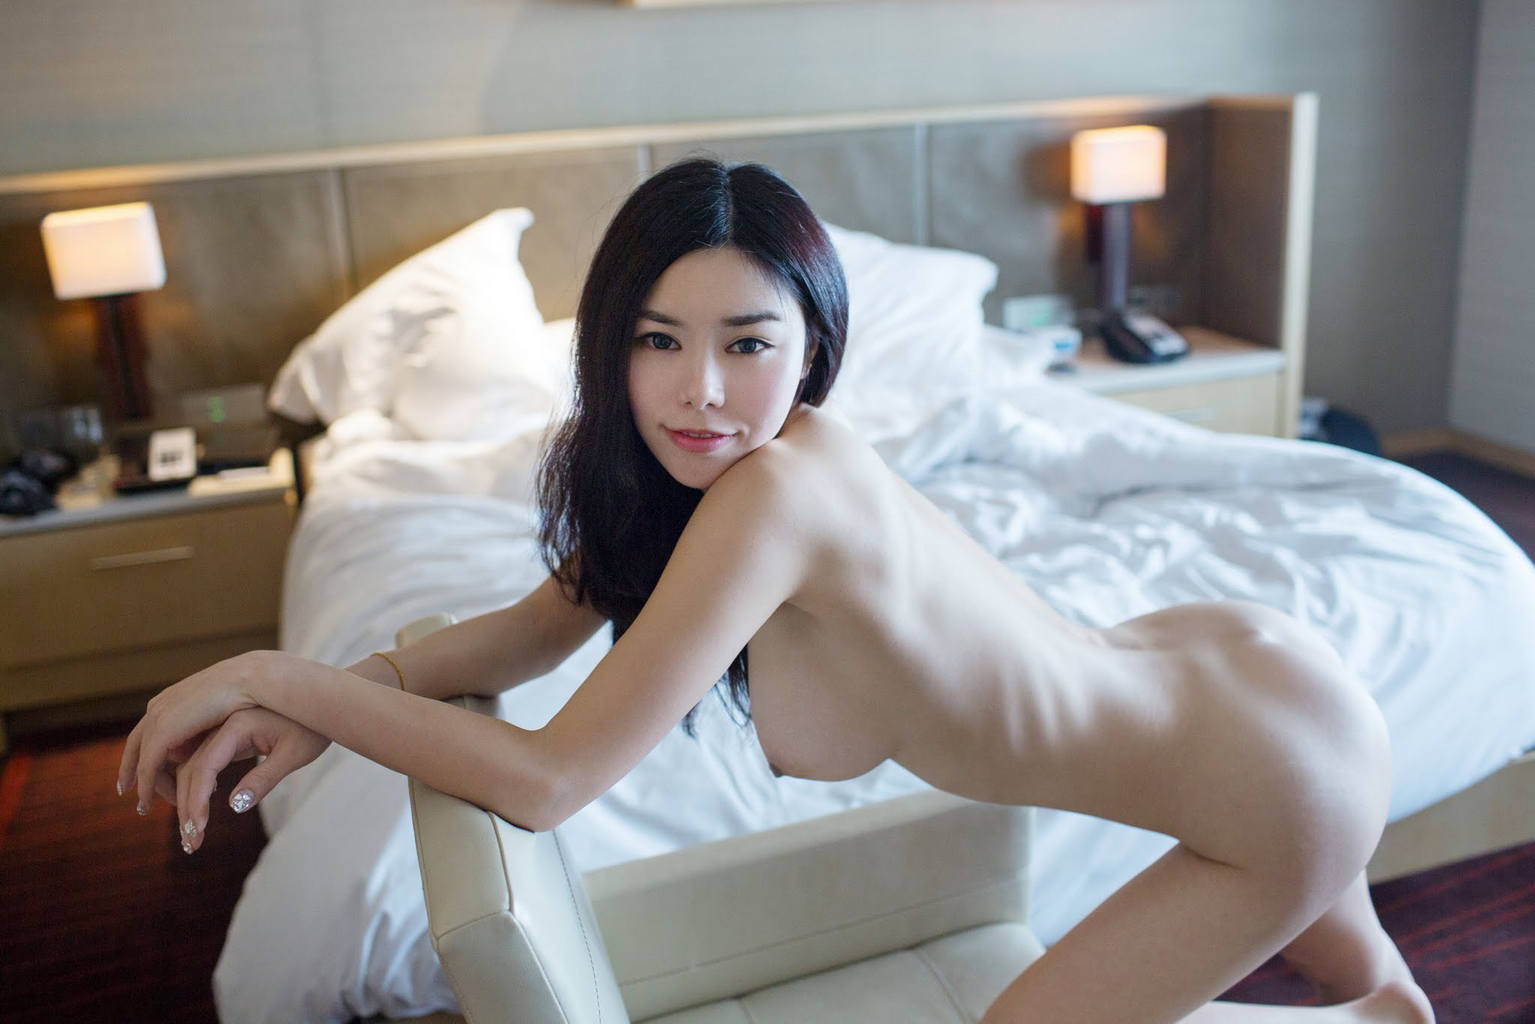 Chinese picture scenes full sexy full sexy photo in chinese picture scenes